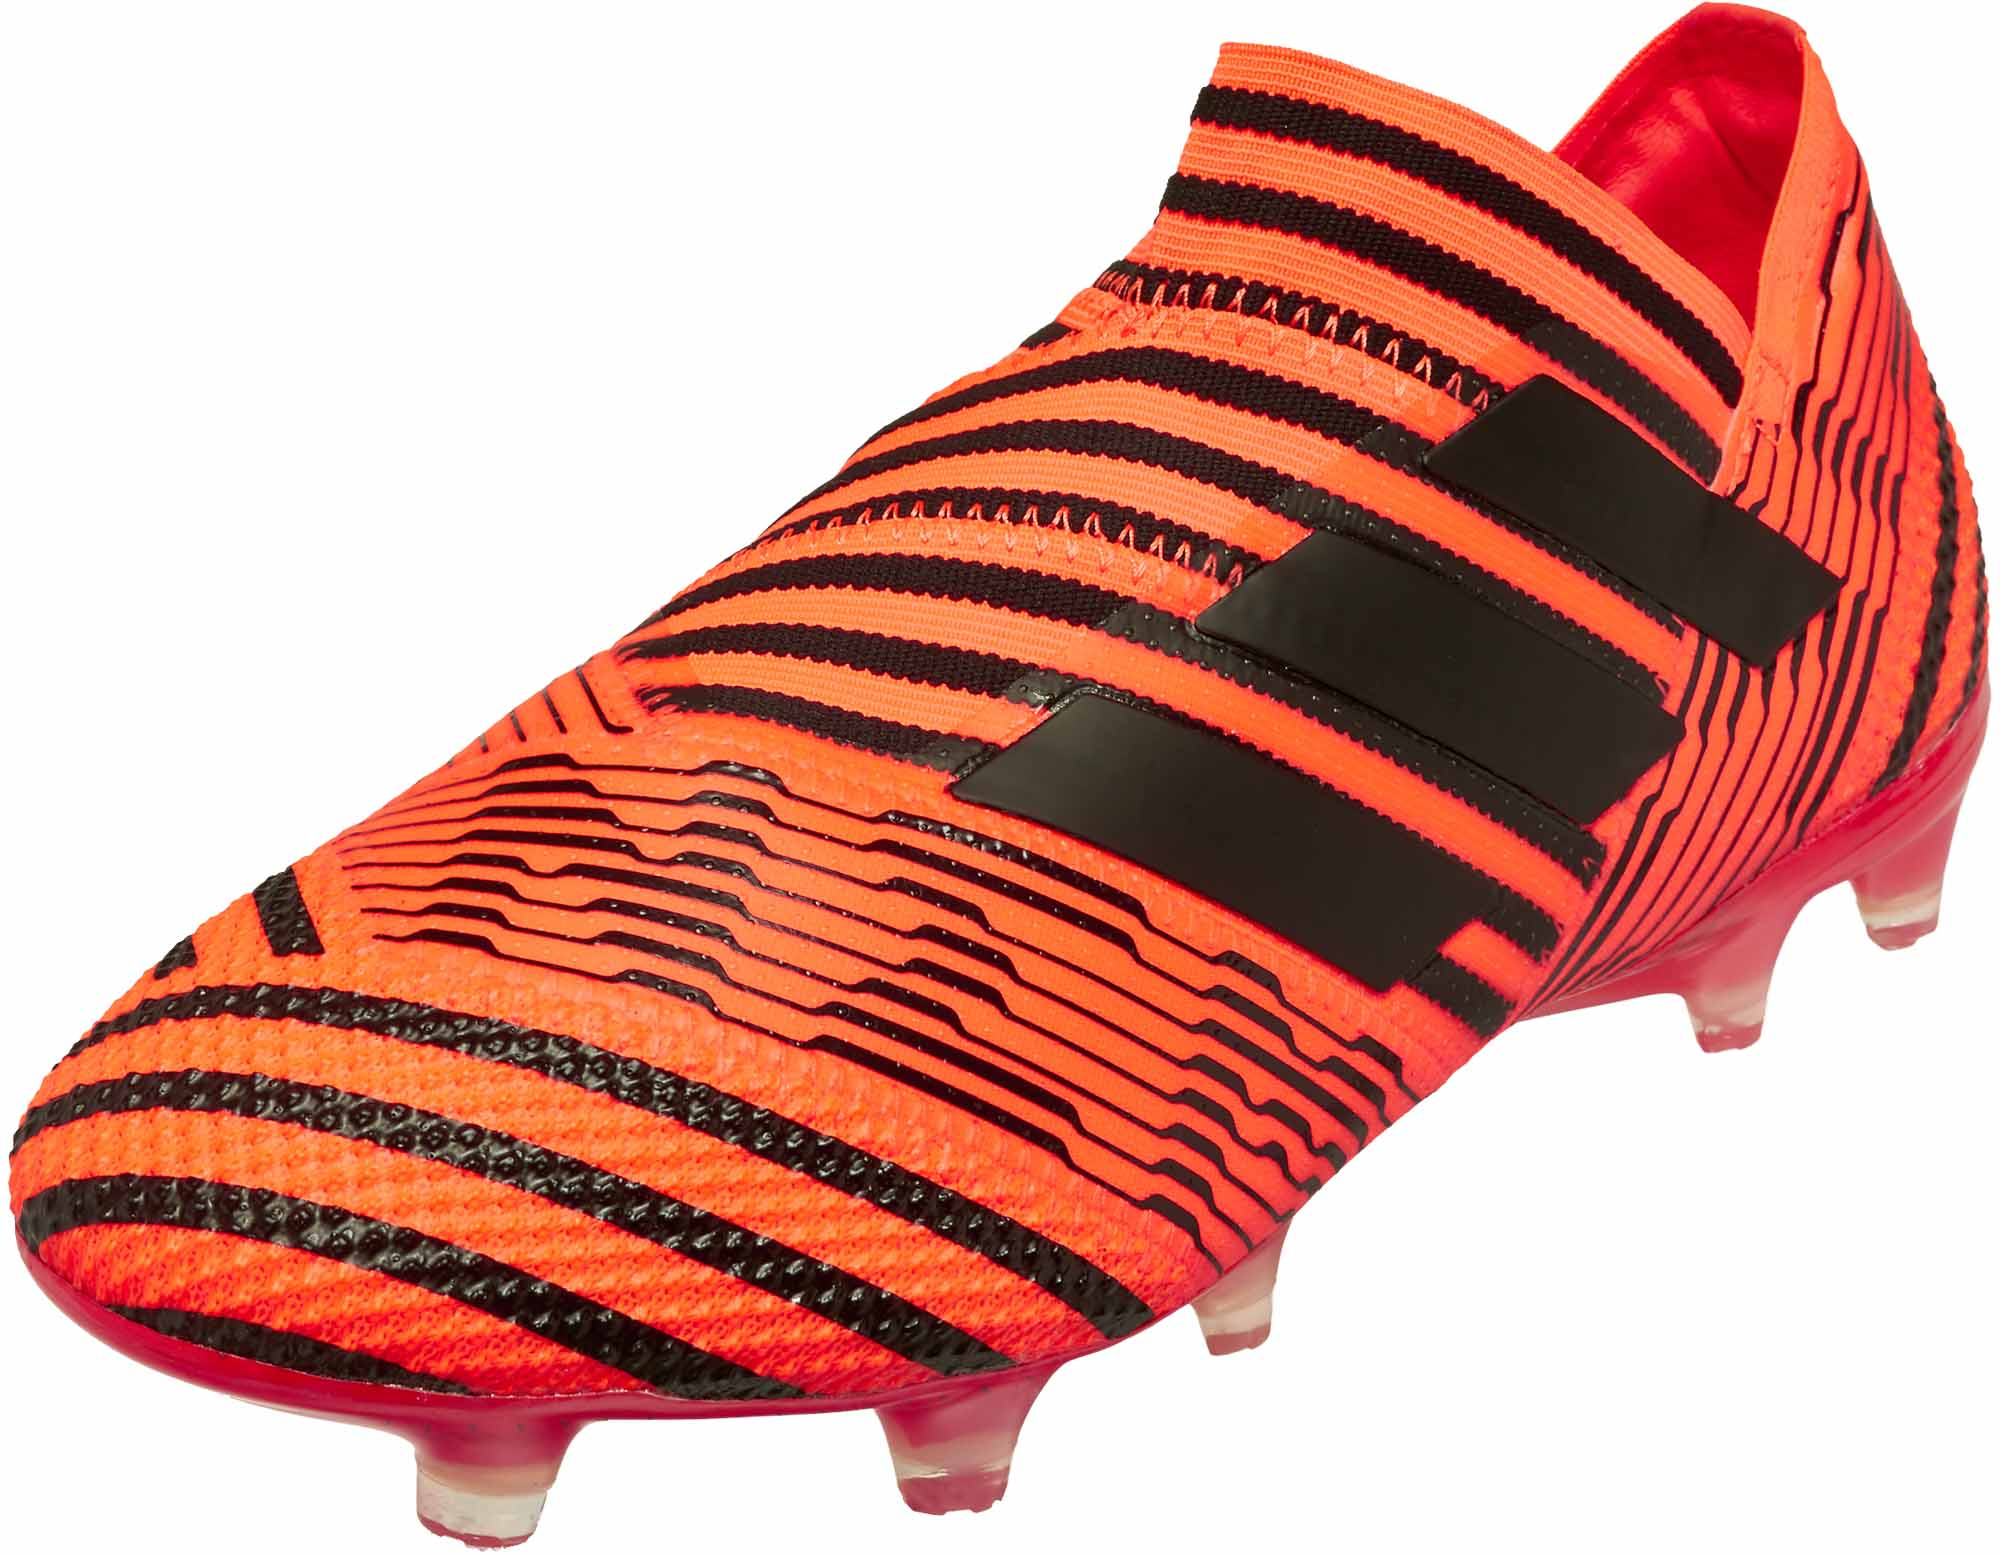 3b6c9f36d2ed adidas Nemeziz 17+ 360Agility FG Soccer Cleats – Solar Orange   Core Black